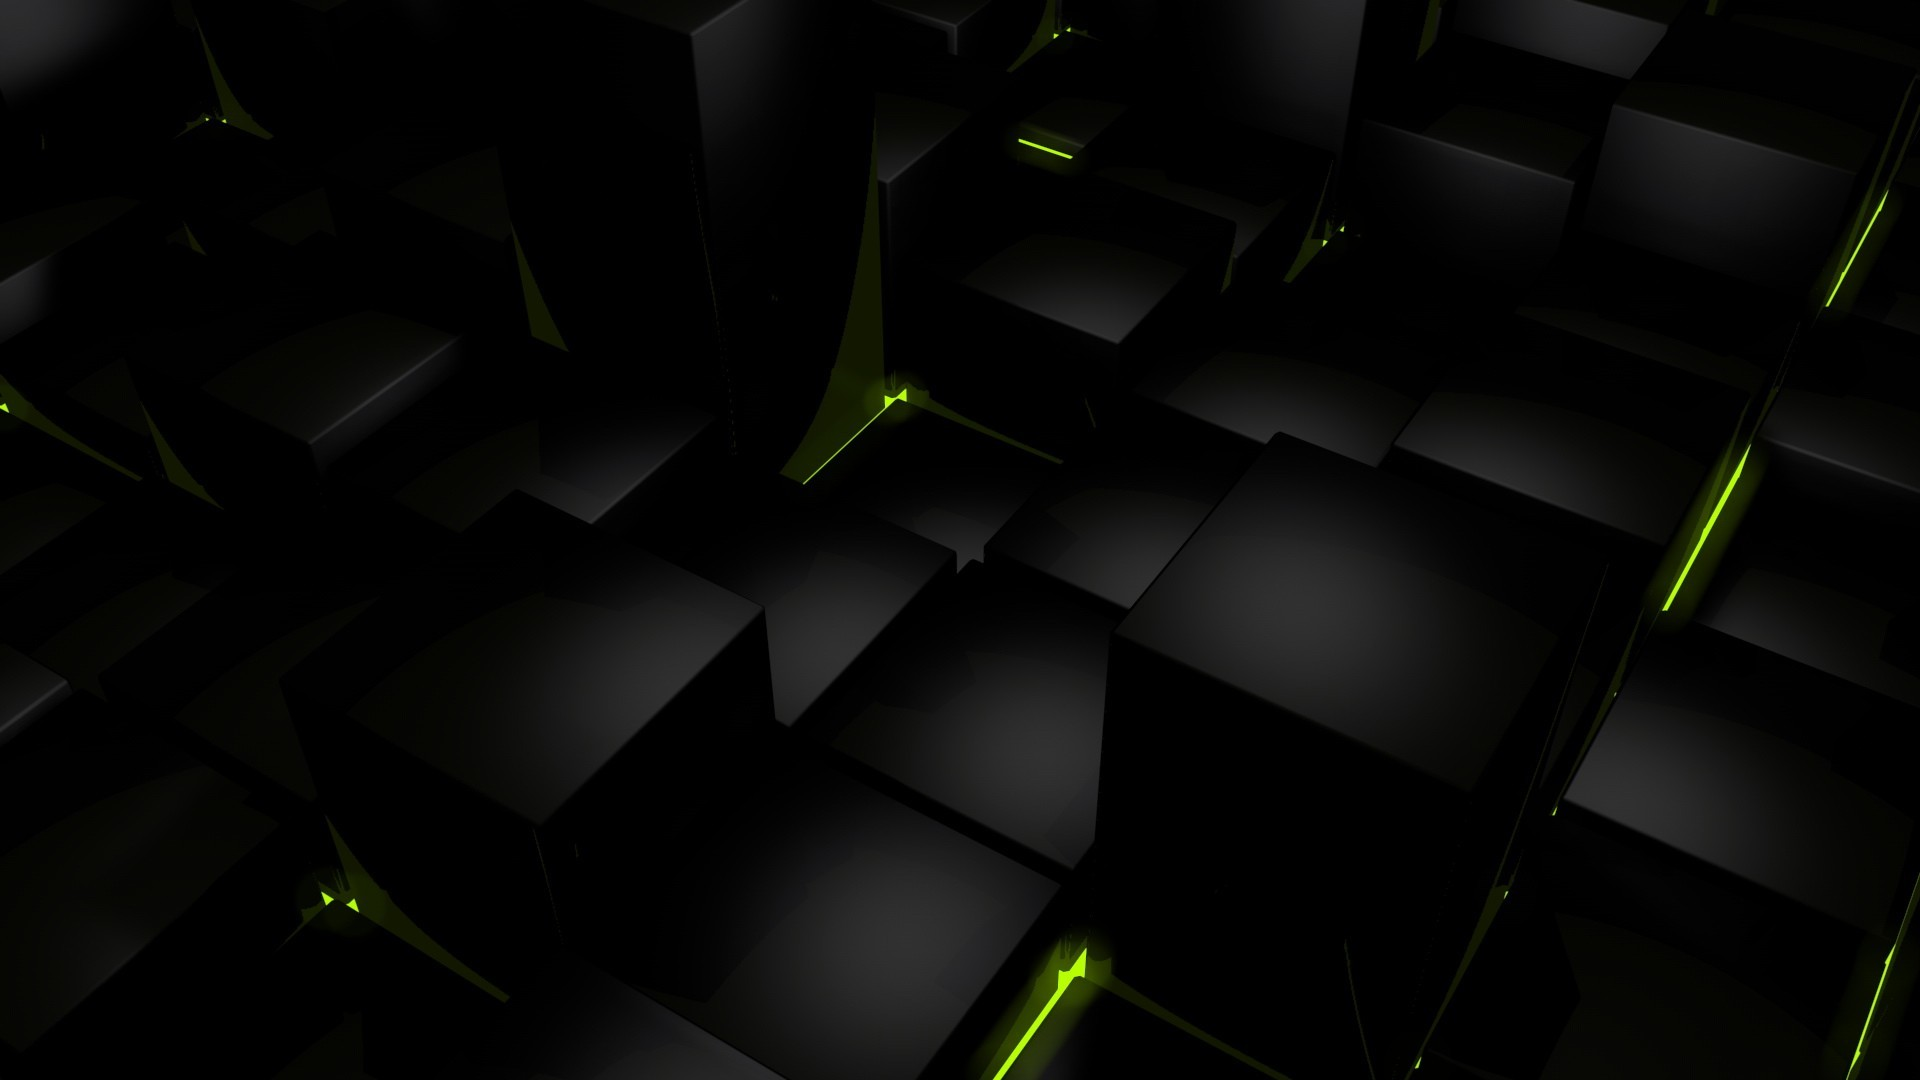 Explore Black Background Wallpaper and more!